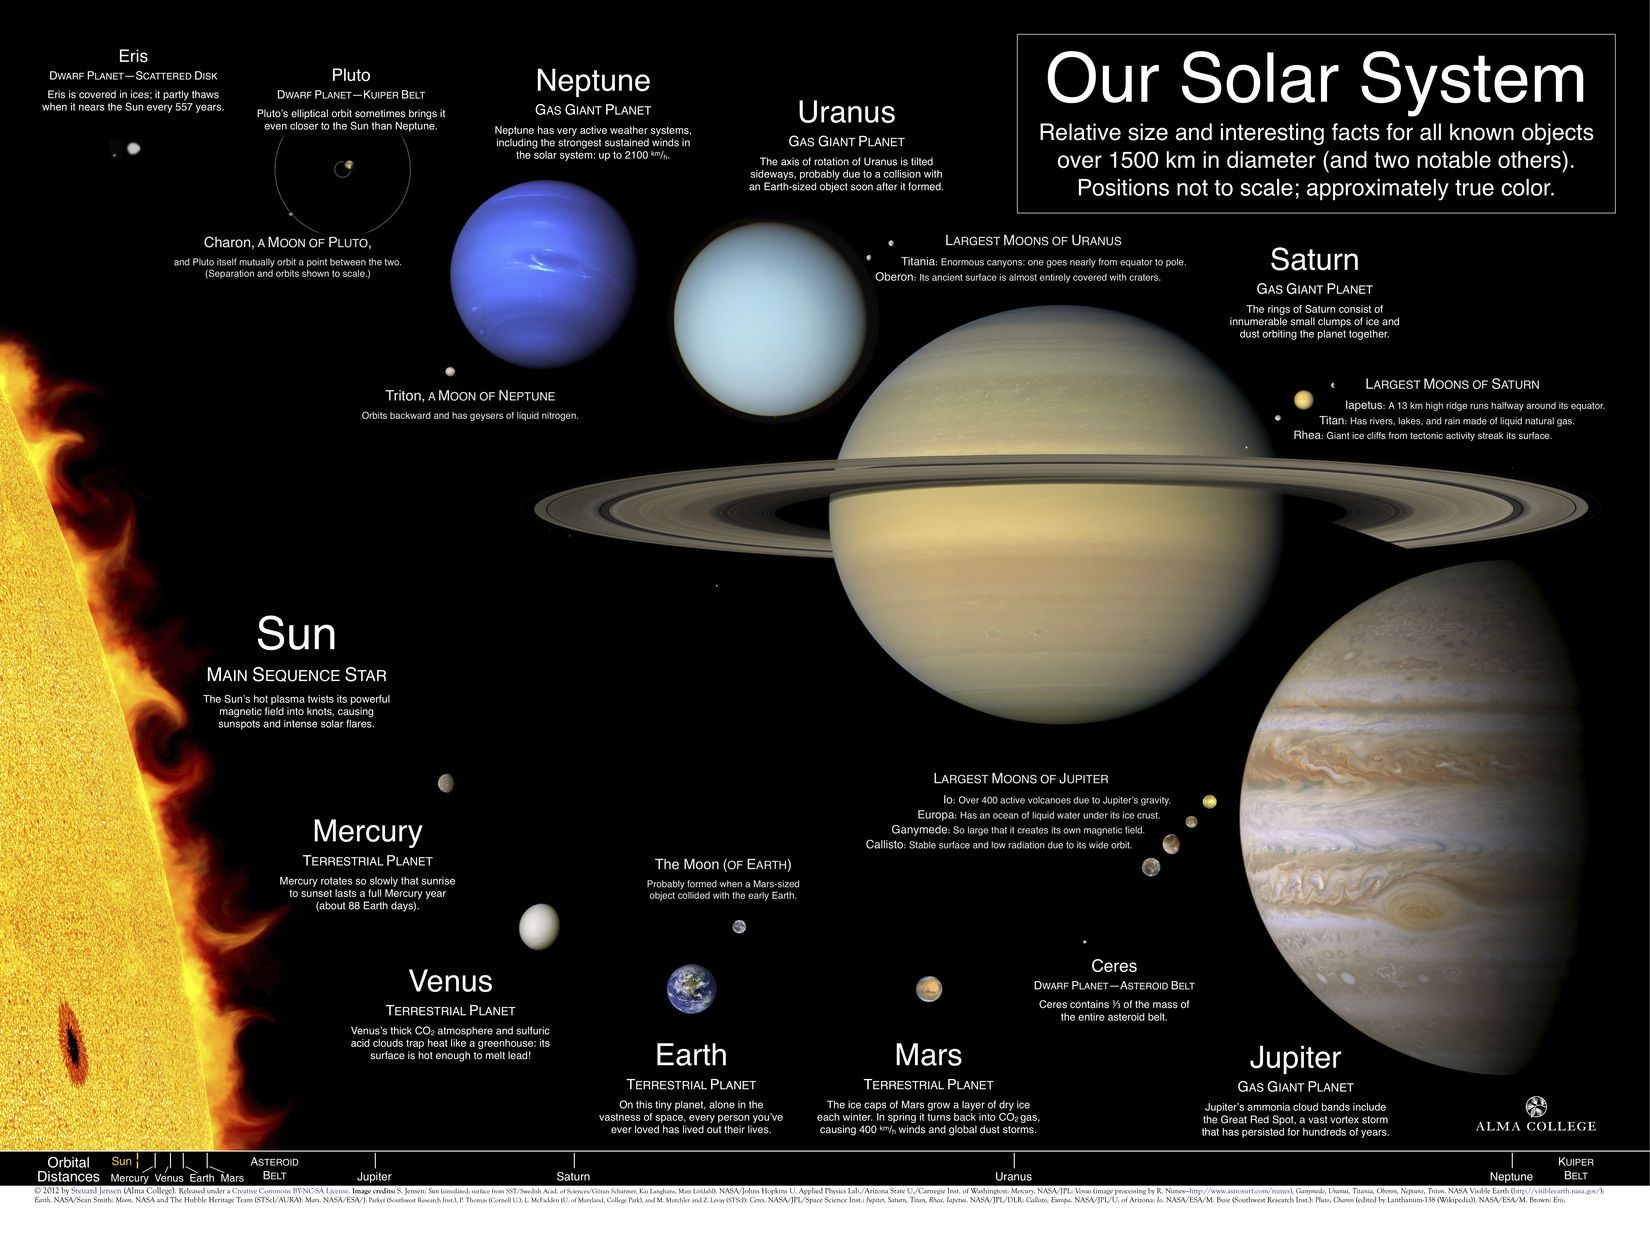 the size of our solar system | Our Solar System: A poster ...